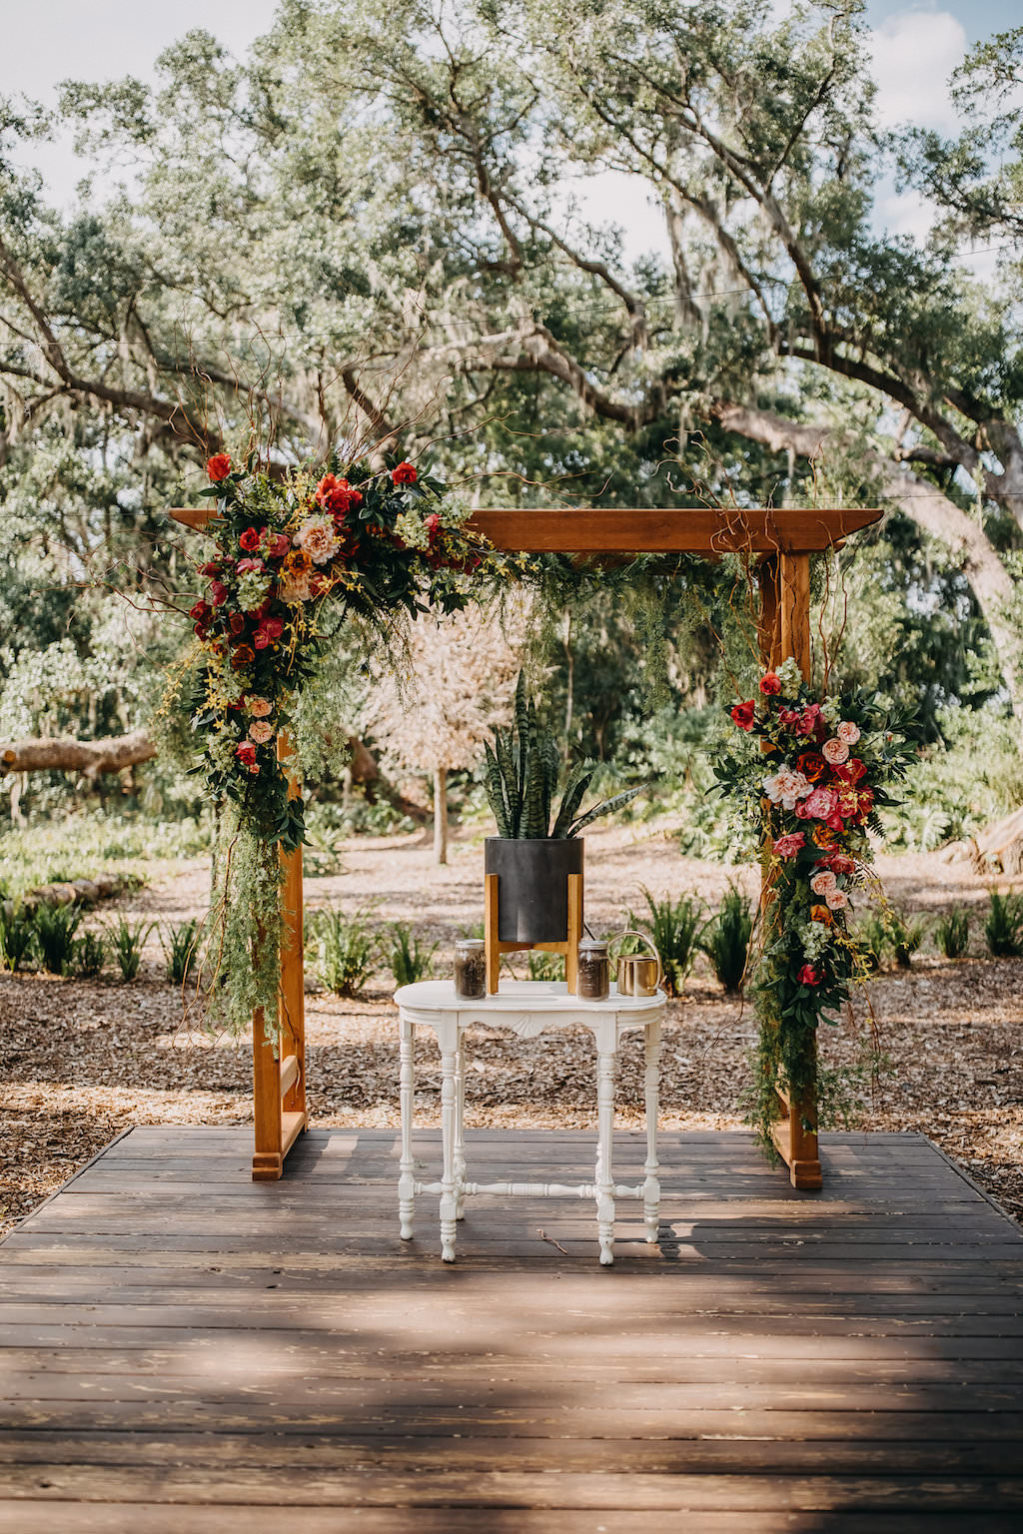 Outdoor Tropical Inspired Wedding Ceremony Decor, Wooden Arch with Pink, Yellow, Orange, Red and Greenery Bouquets, White Ceremony Table with Black and Gold Vase withe Palm Tree Leaves | Tampa Bay Photographer Rad Red Creative | Venue Cross Creek Ranch